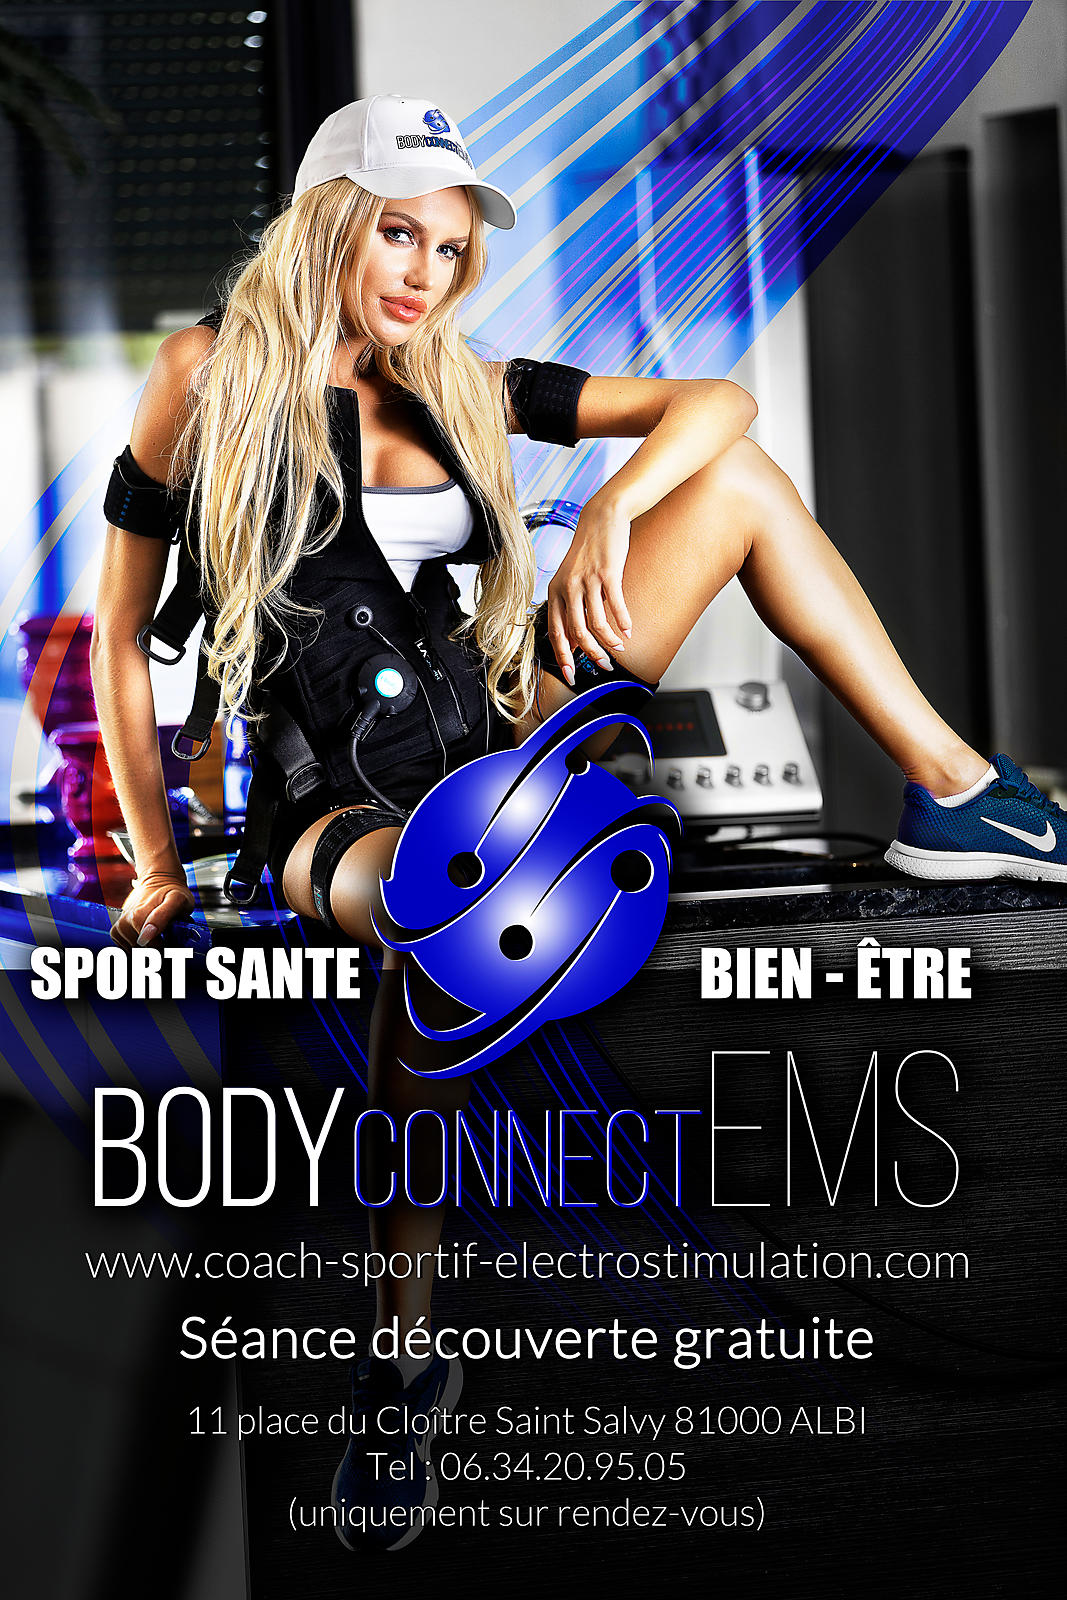 Commissioned by BODYconnectEMS - Miha-Bodytec (France)